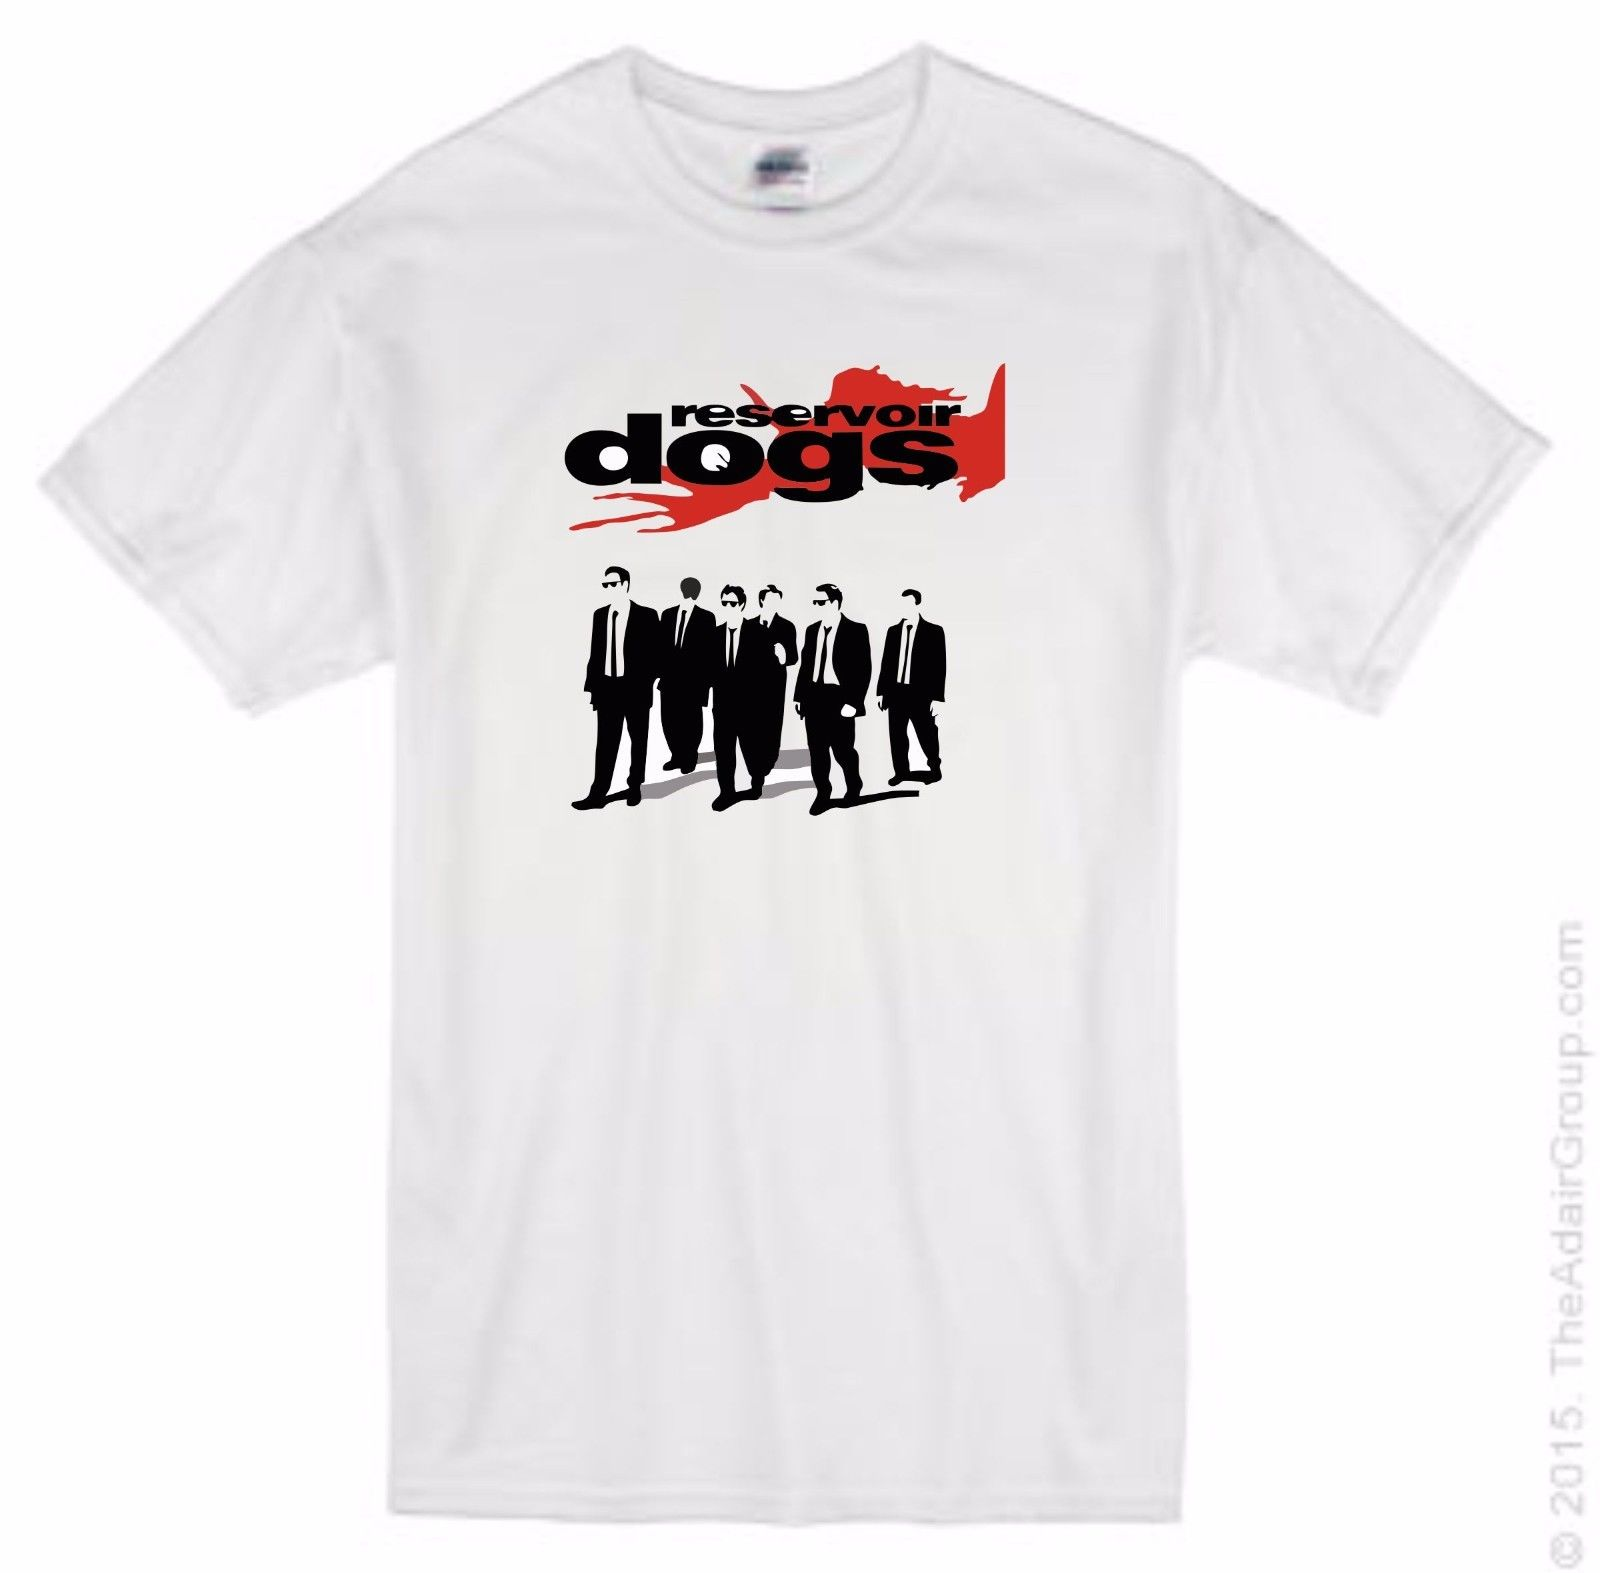 reservoir-dogs-t-shirt-cult-film-font-b-tarantino-b-font-1990's-gangster-free-delivery-stranger-things-design-t-shirt-2018-new